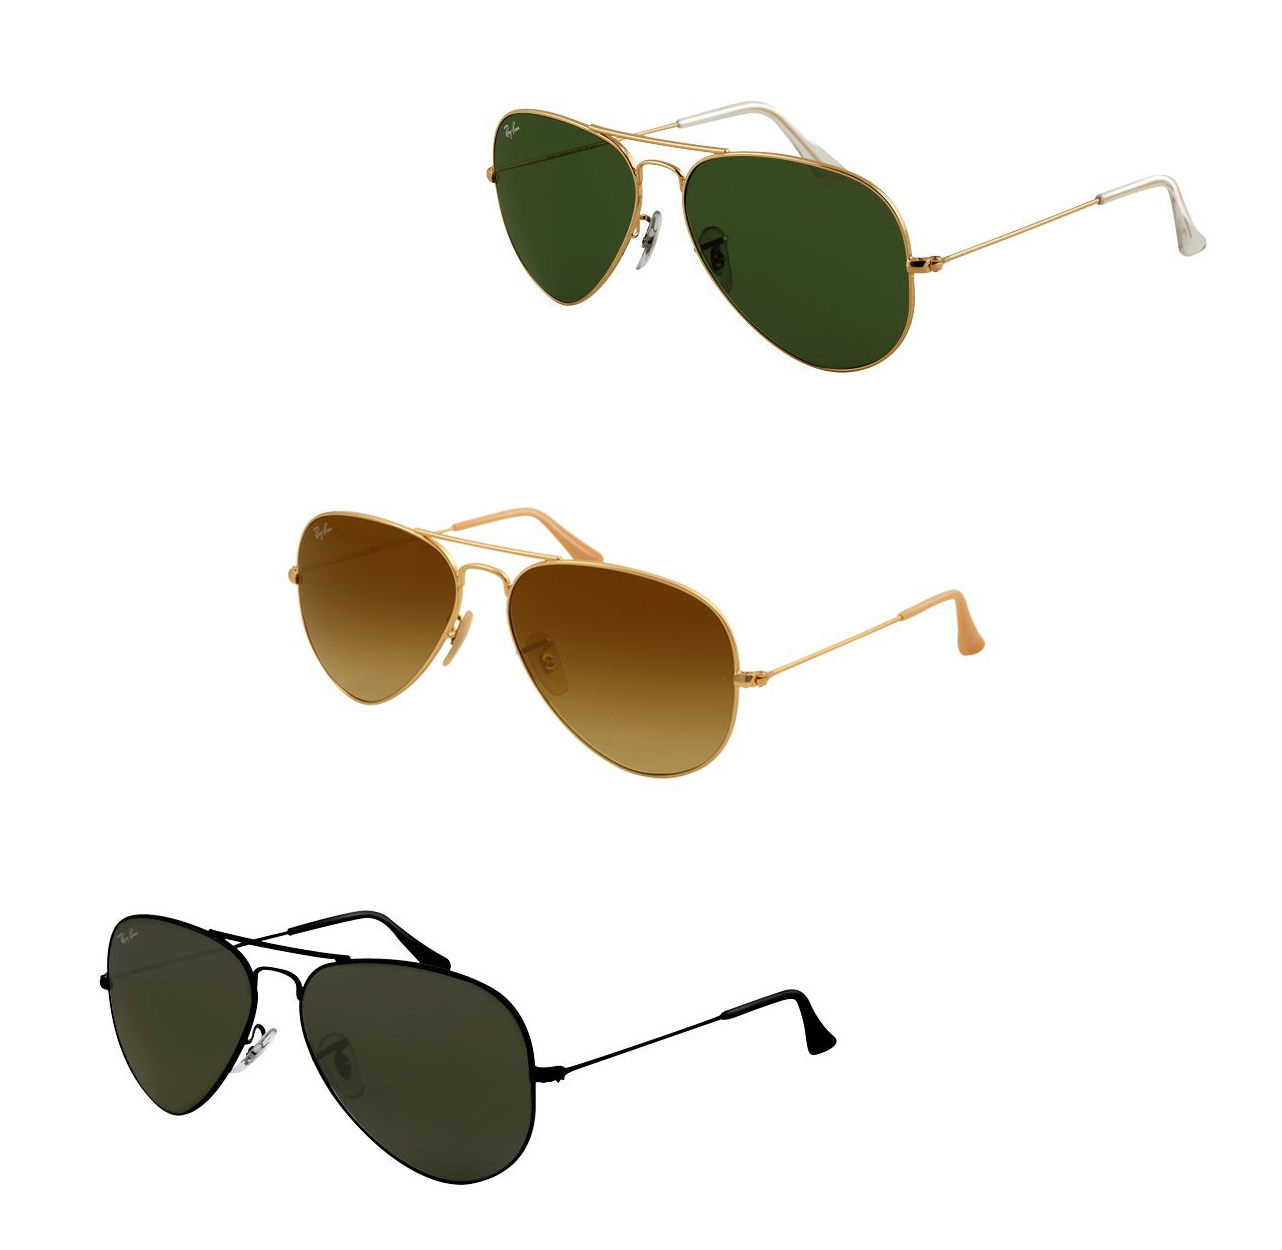 Ray-Ban RB3025 Aviator Large Metal Sunglasses - 86 Models cb8285e13e